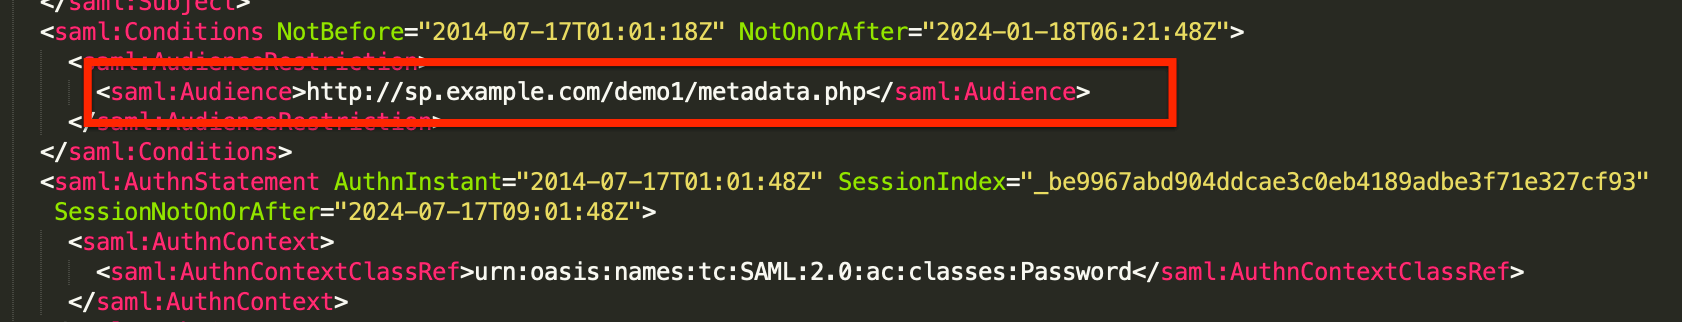 """Audience"" in a SAML response"